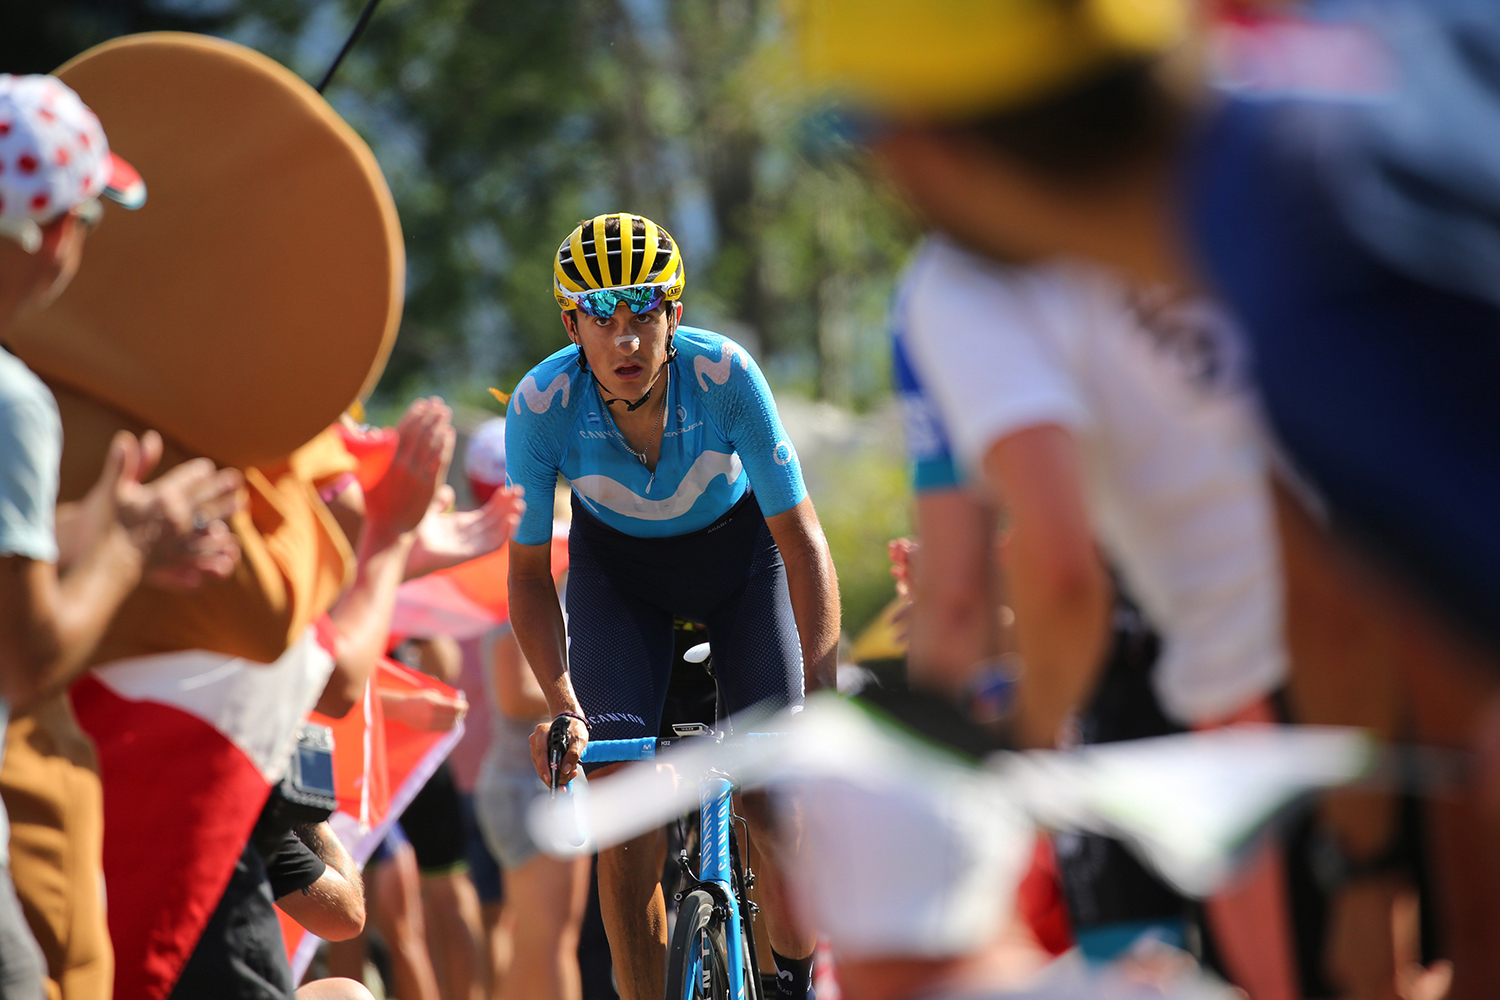 Tour de France 2018 - 105th Edition - 12th stage Bourg Saint Maurice Les Arcs - Alpe d'Huez 175 km - 19/07/2018 - Marc Soler (ESP - Movistar) - photo Kei Tsuji/BettiniPhoto©2018